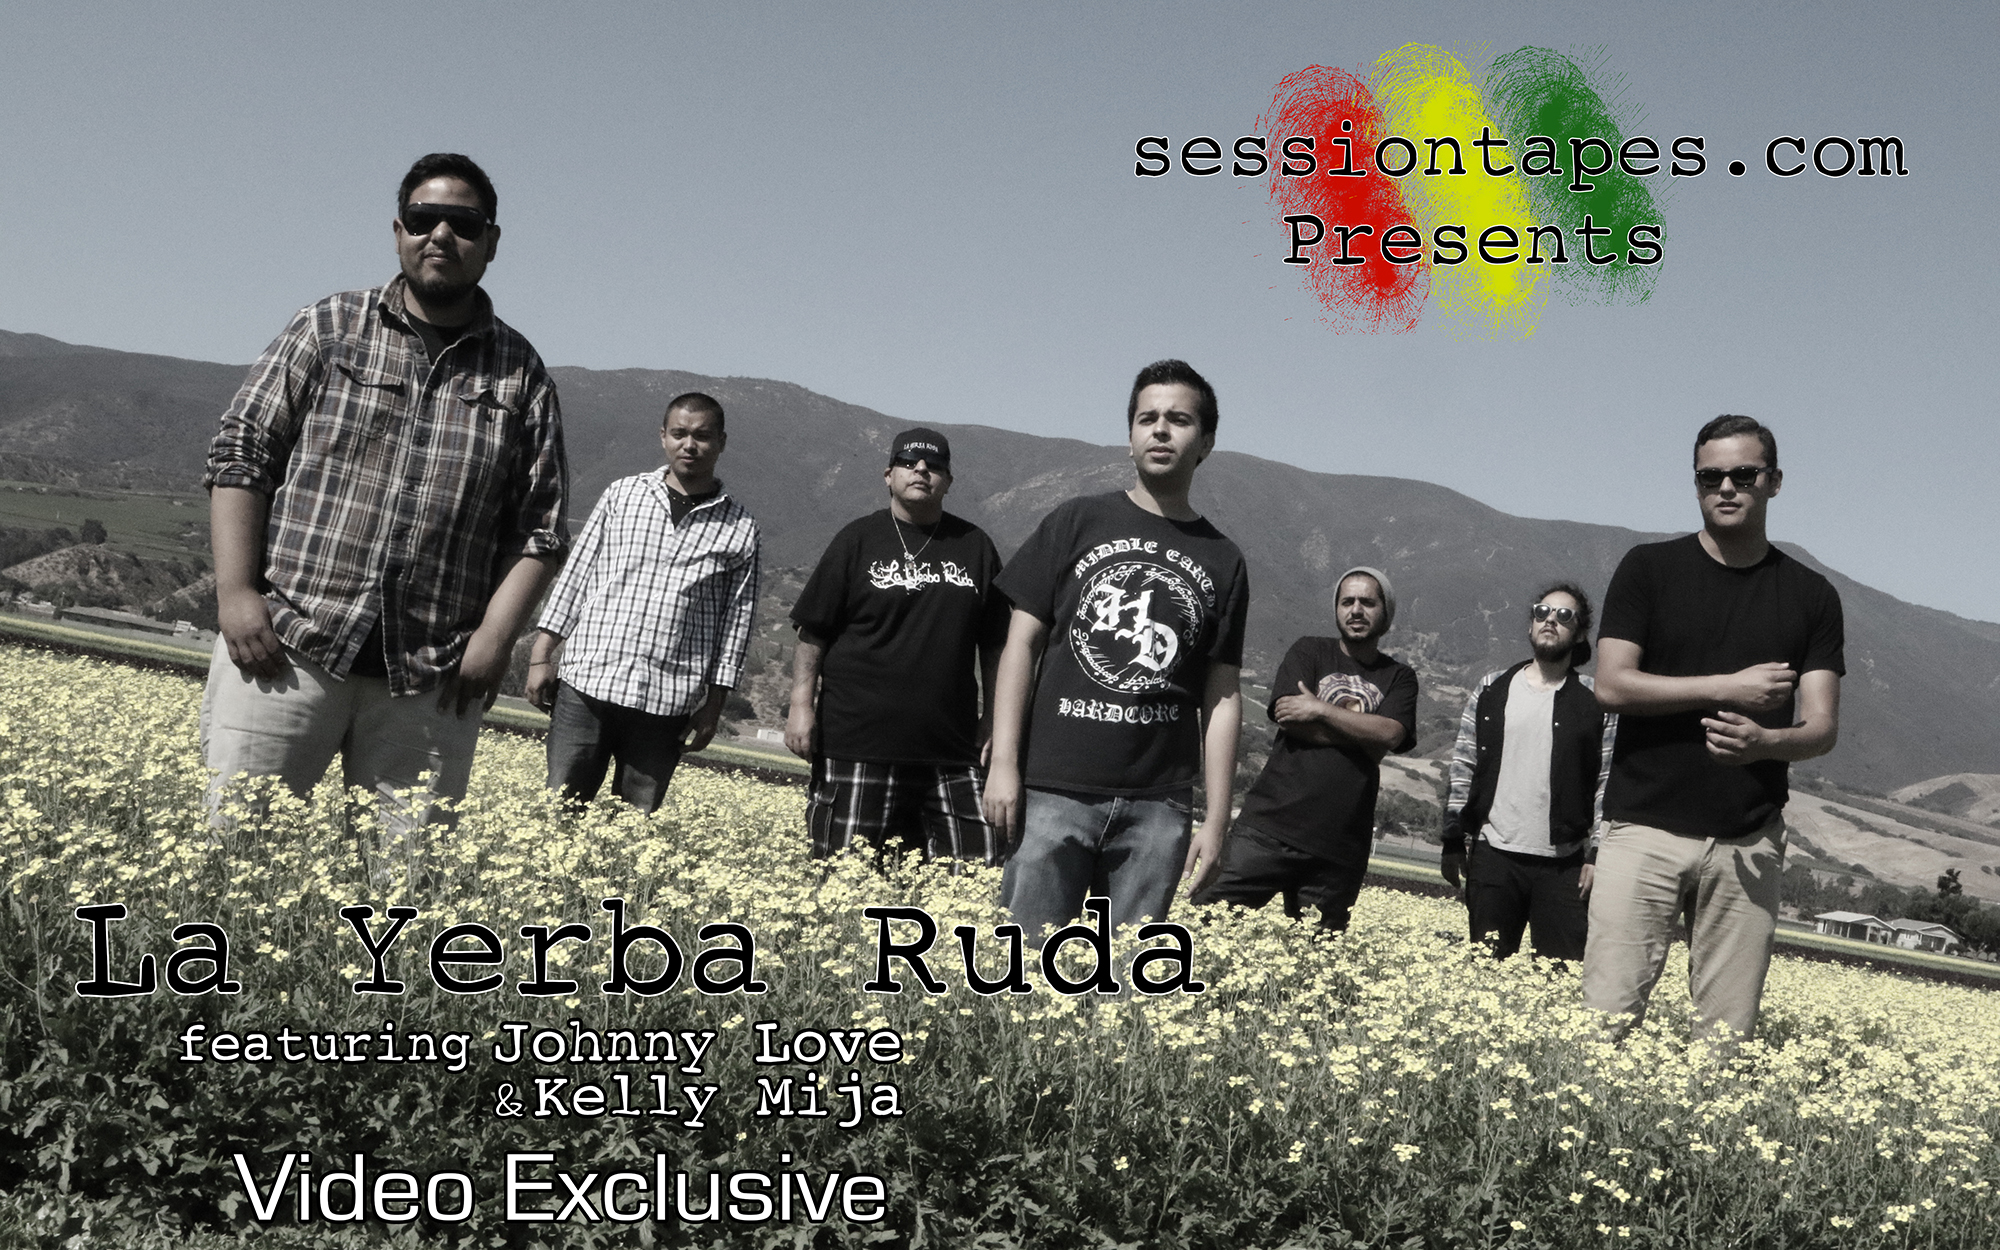 Sessiontapes.com Presents La Yerba Ruda featuring Johnny Love & Kelly Mija